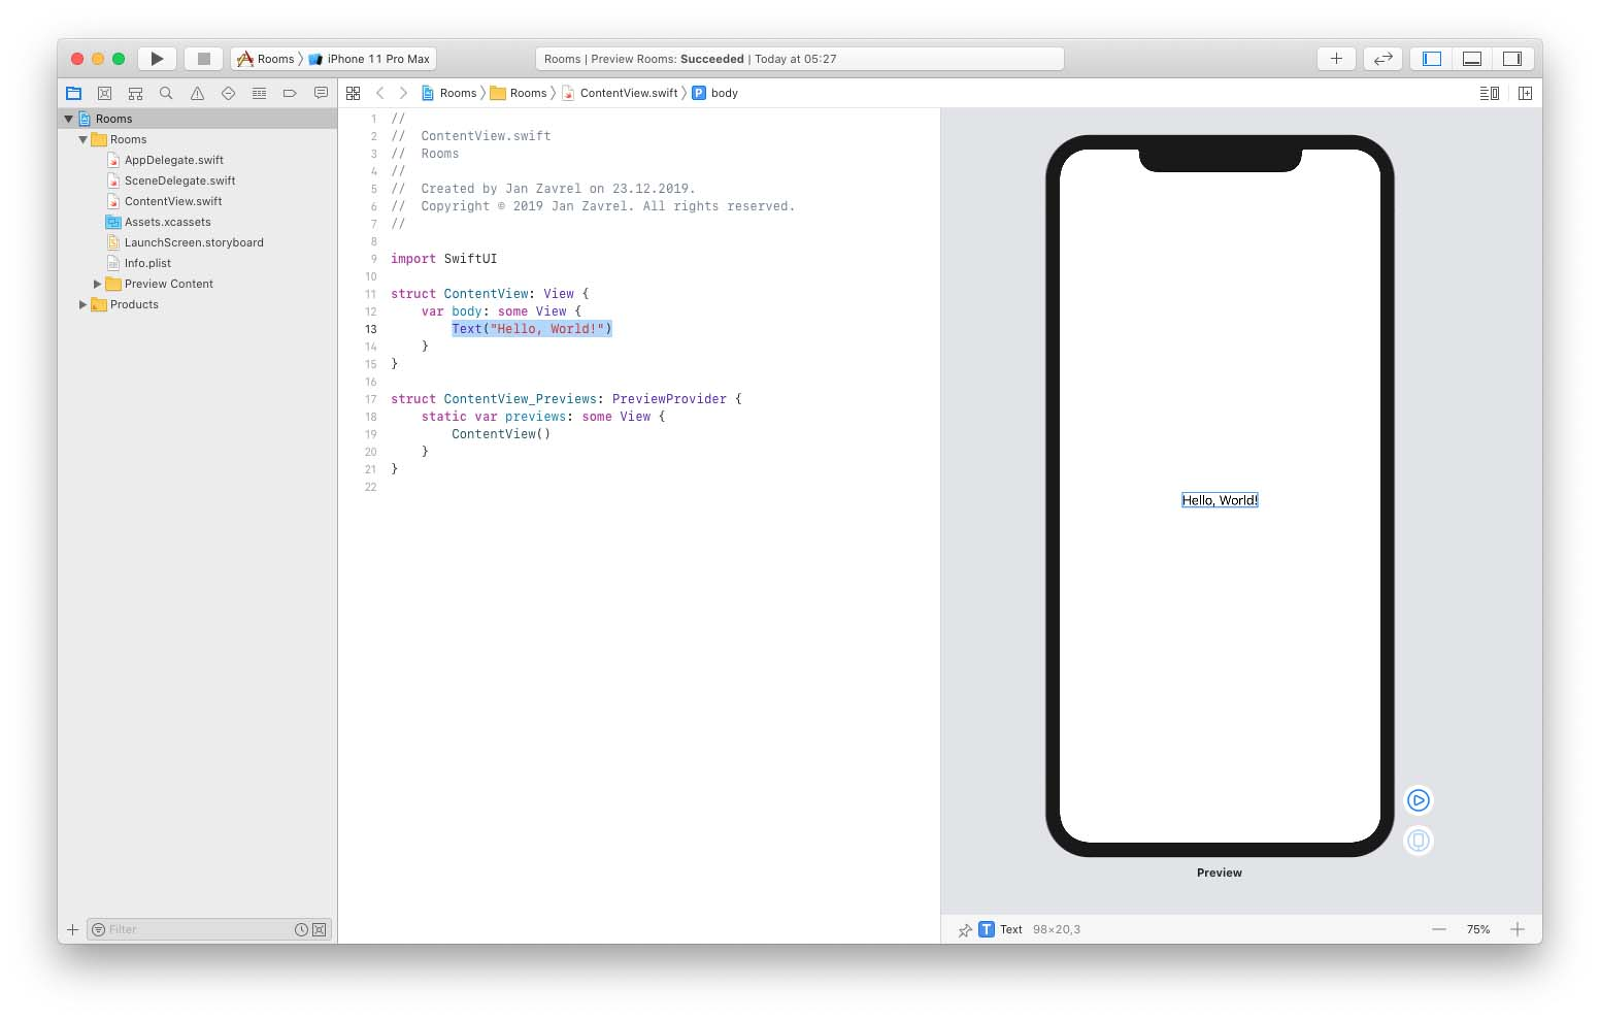 https://res.cloudinary.com/codewithjan/image/upload/v1578414646/swiftui-by-examples/swiftui-by-examples-08.jpg